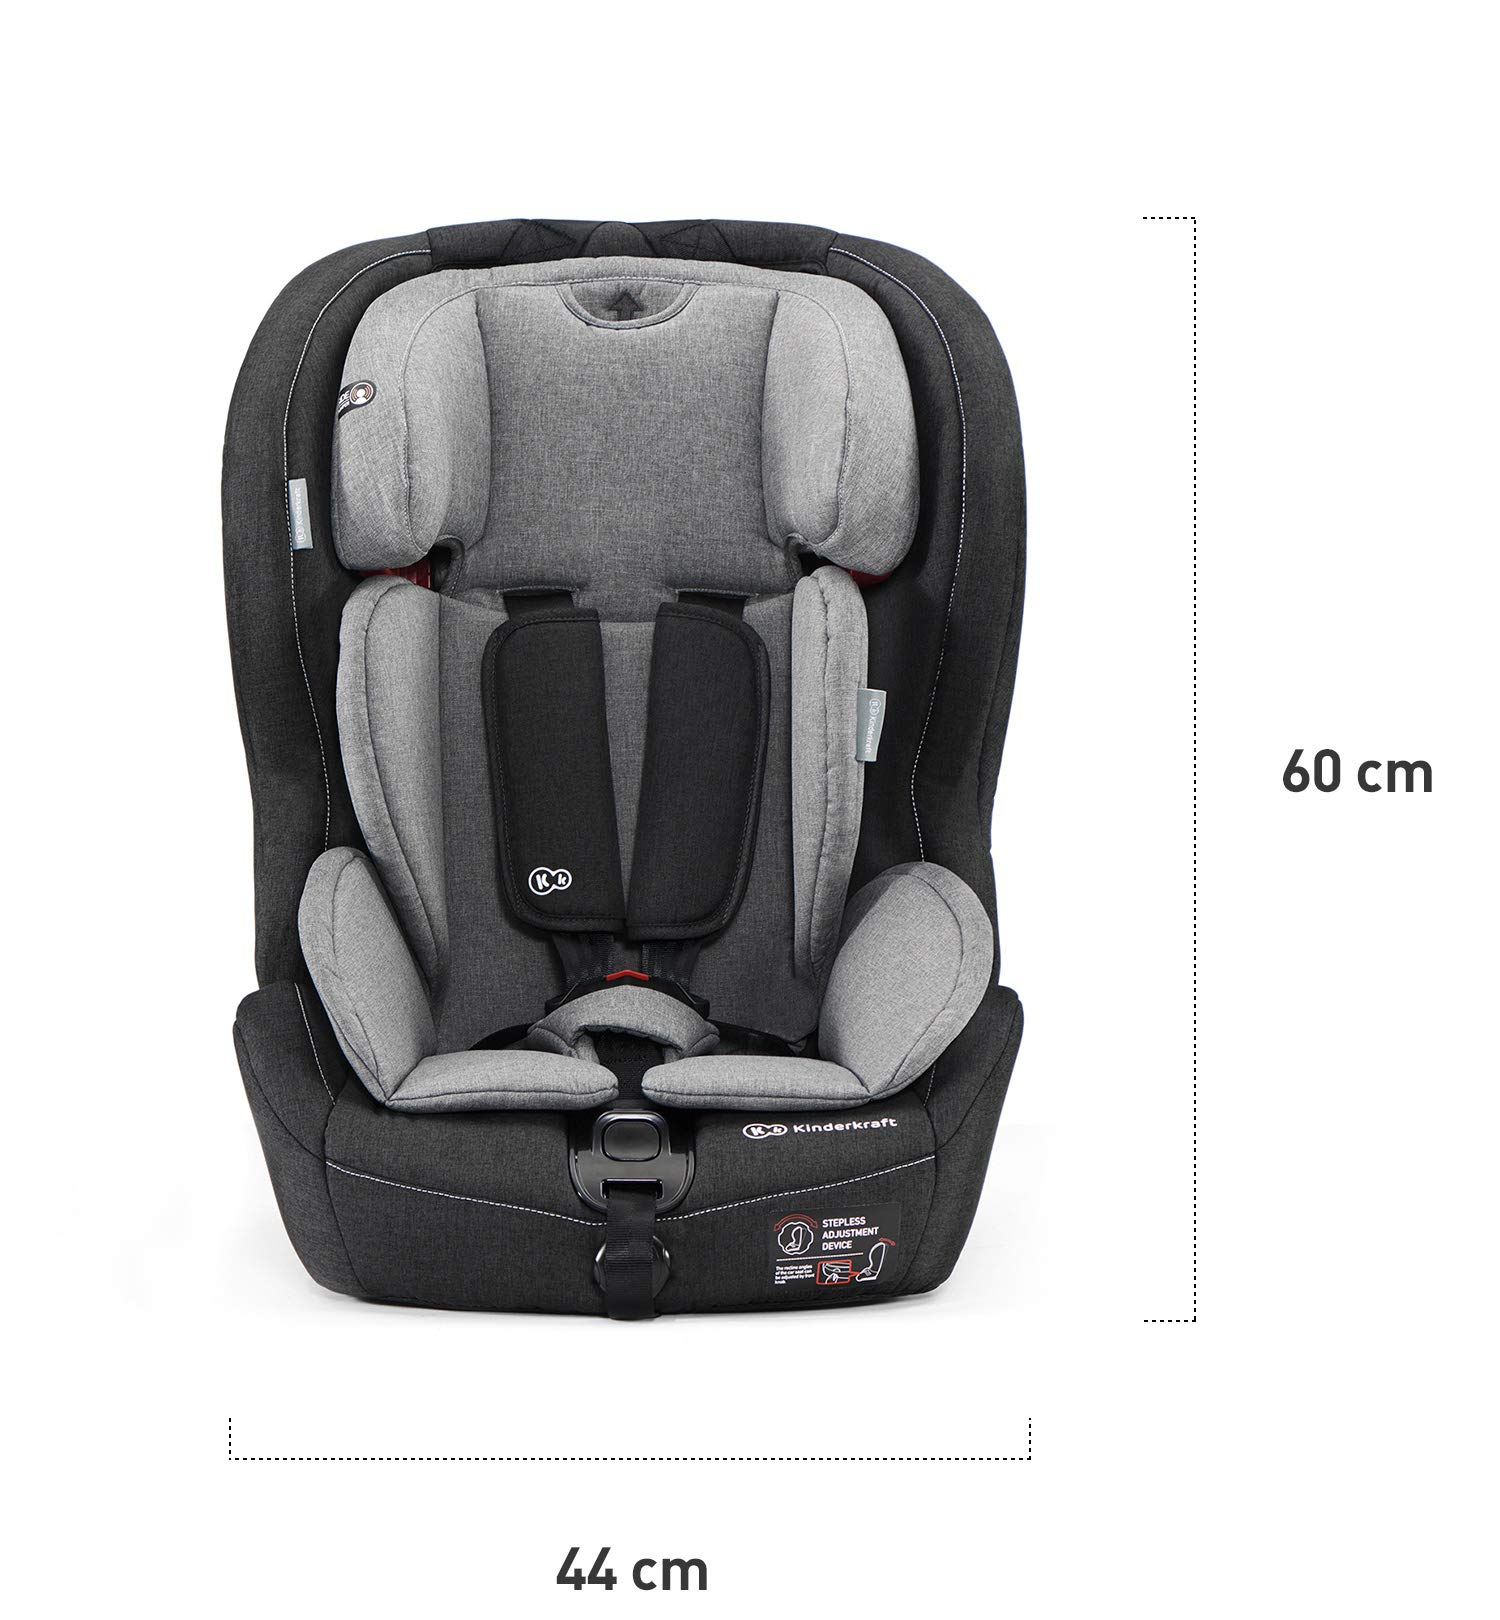 Kinderkraft Car Seat Safety FIX Child's Combination Booster Seat with ISOFIX and Top Tether Group I/II/III (9-36kg) to Approx. 12 Years Safety Certificate ECE R44/04 Navy kk KinderKraft Car Seat - The Safety-Fix car seat grows together with your child. Secure - Equipped with fixing system ISOFIX + Top tether, which guarantees a stable and safe position for your child. Comfort - Hight adjustable 5-point internal harness and 10-step adjustment headrest means the seat will serve your child for years. 6